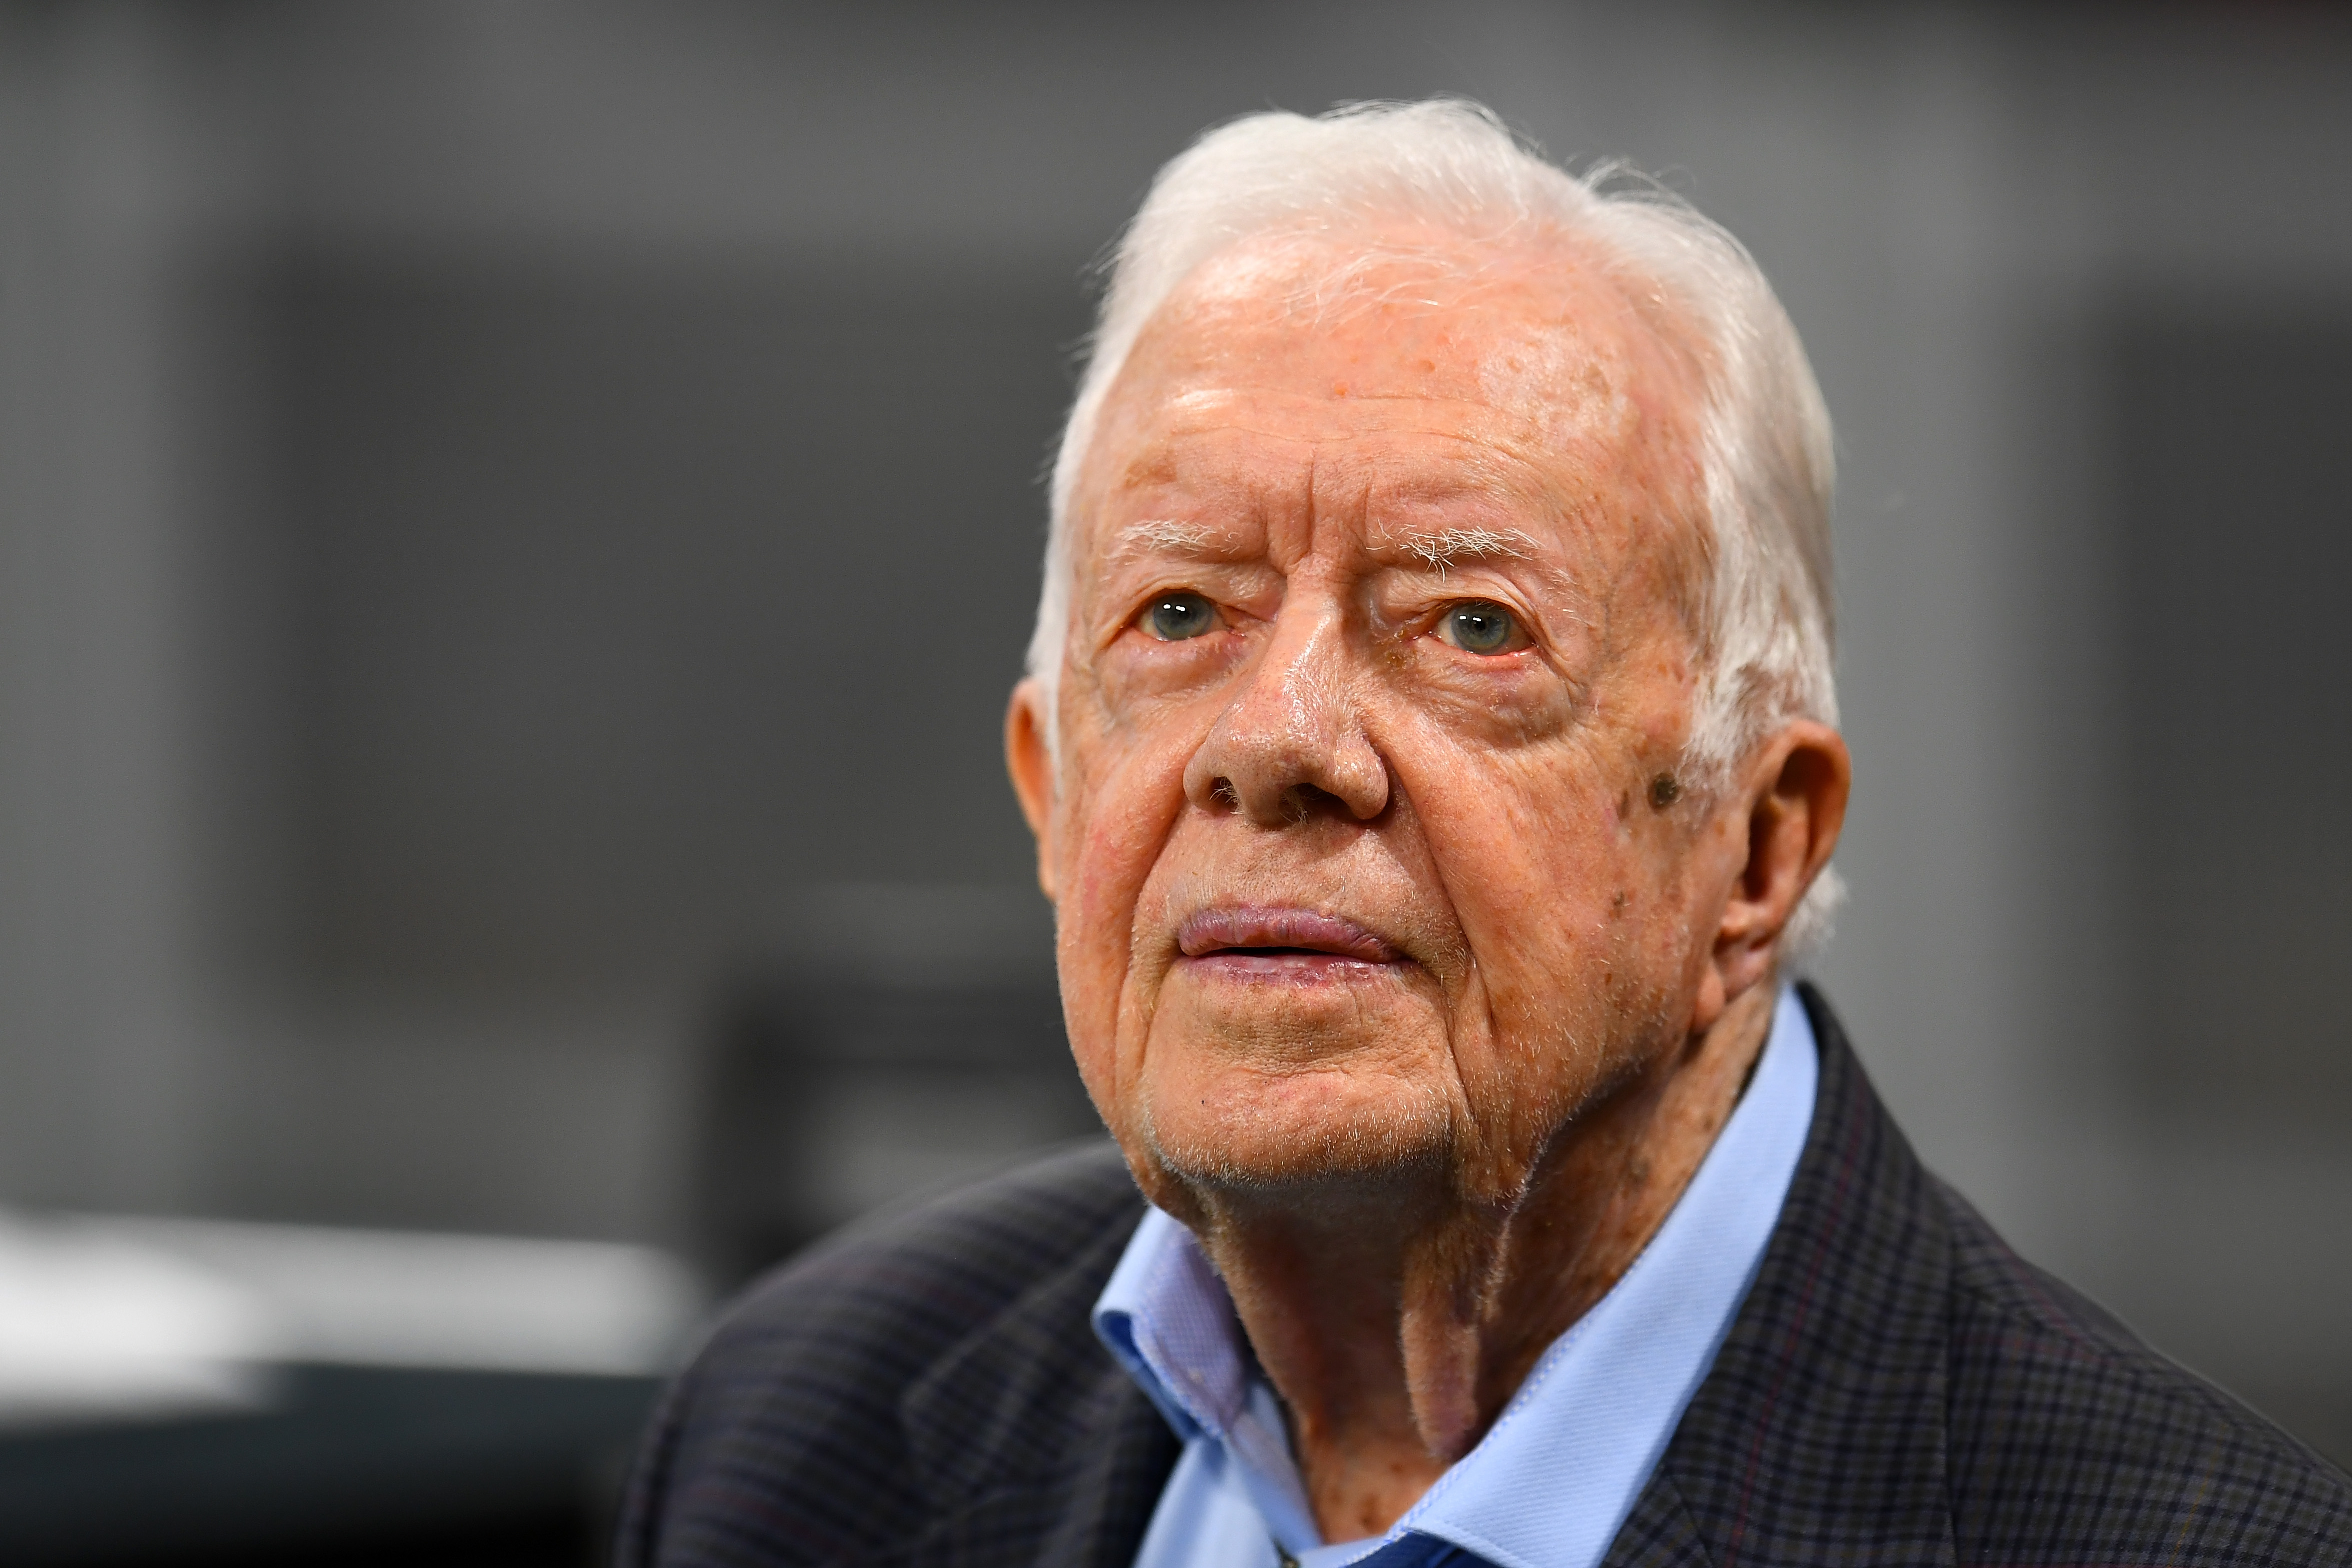 Jimmy Carter on George Floyd protests: 'Silence can be as deadly as violence'